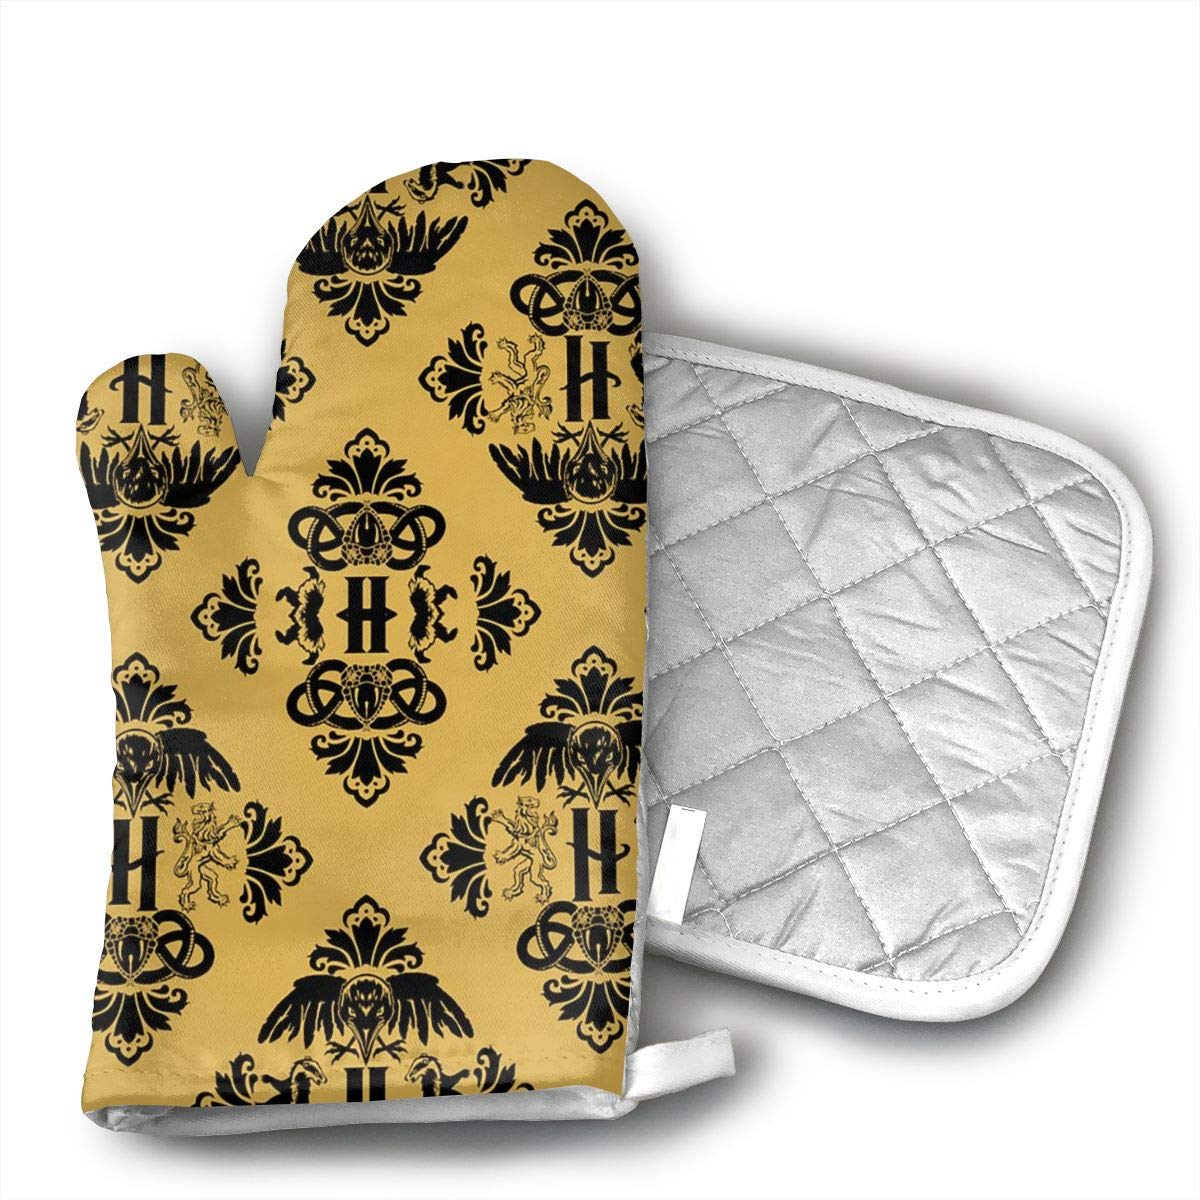 CHWEYAQ Magic Houses of Potter Oven Mitts and Pot Holders Set of for Kitchen Set with Cotton Non-Slip Grip